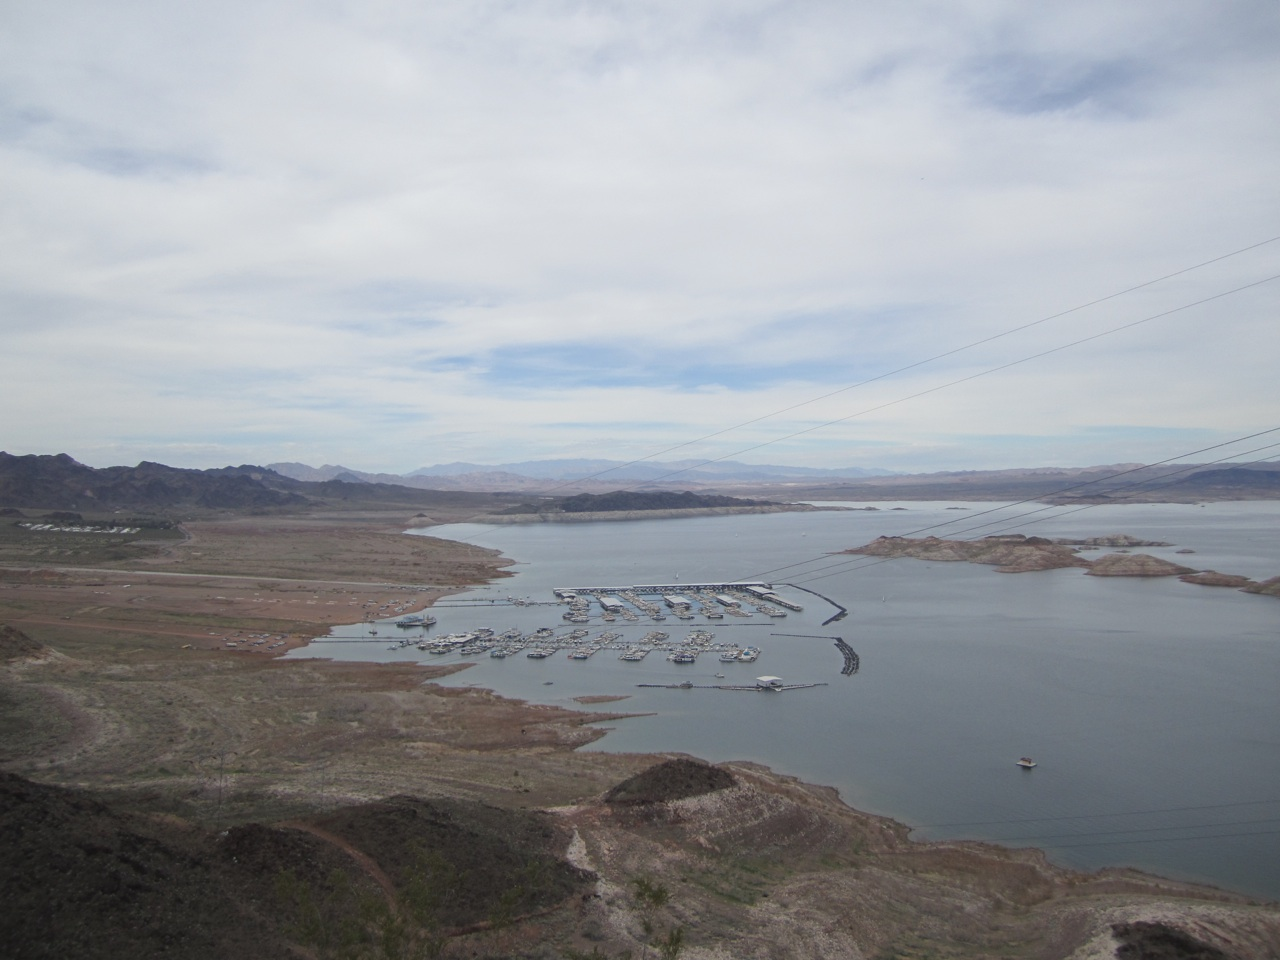 A View Of The Marina At Lake Mead.  The RV Park That We Stayed In Is Towards The Left Side Of The Photo.